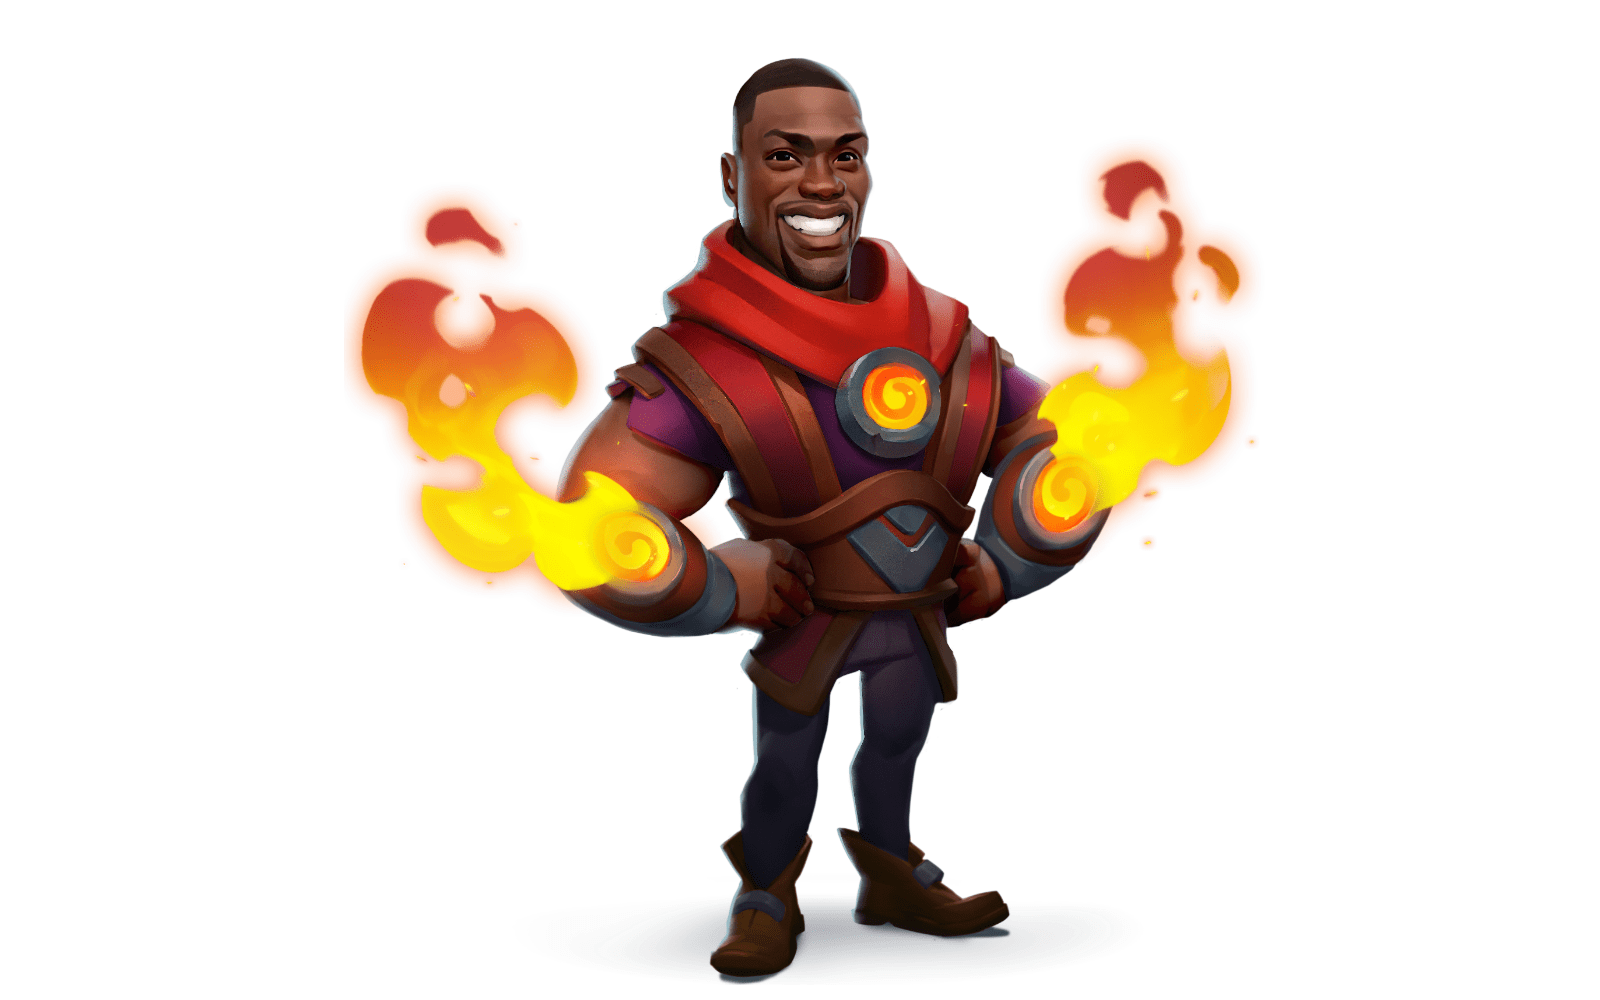 13229fdad Kevin Hart made a family-friendly mobile game